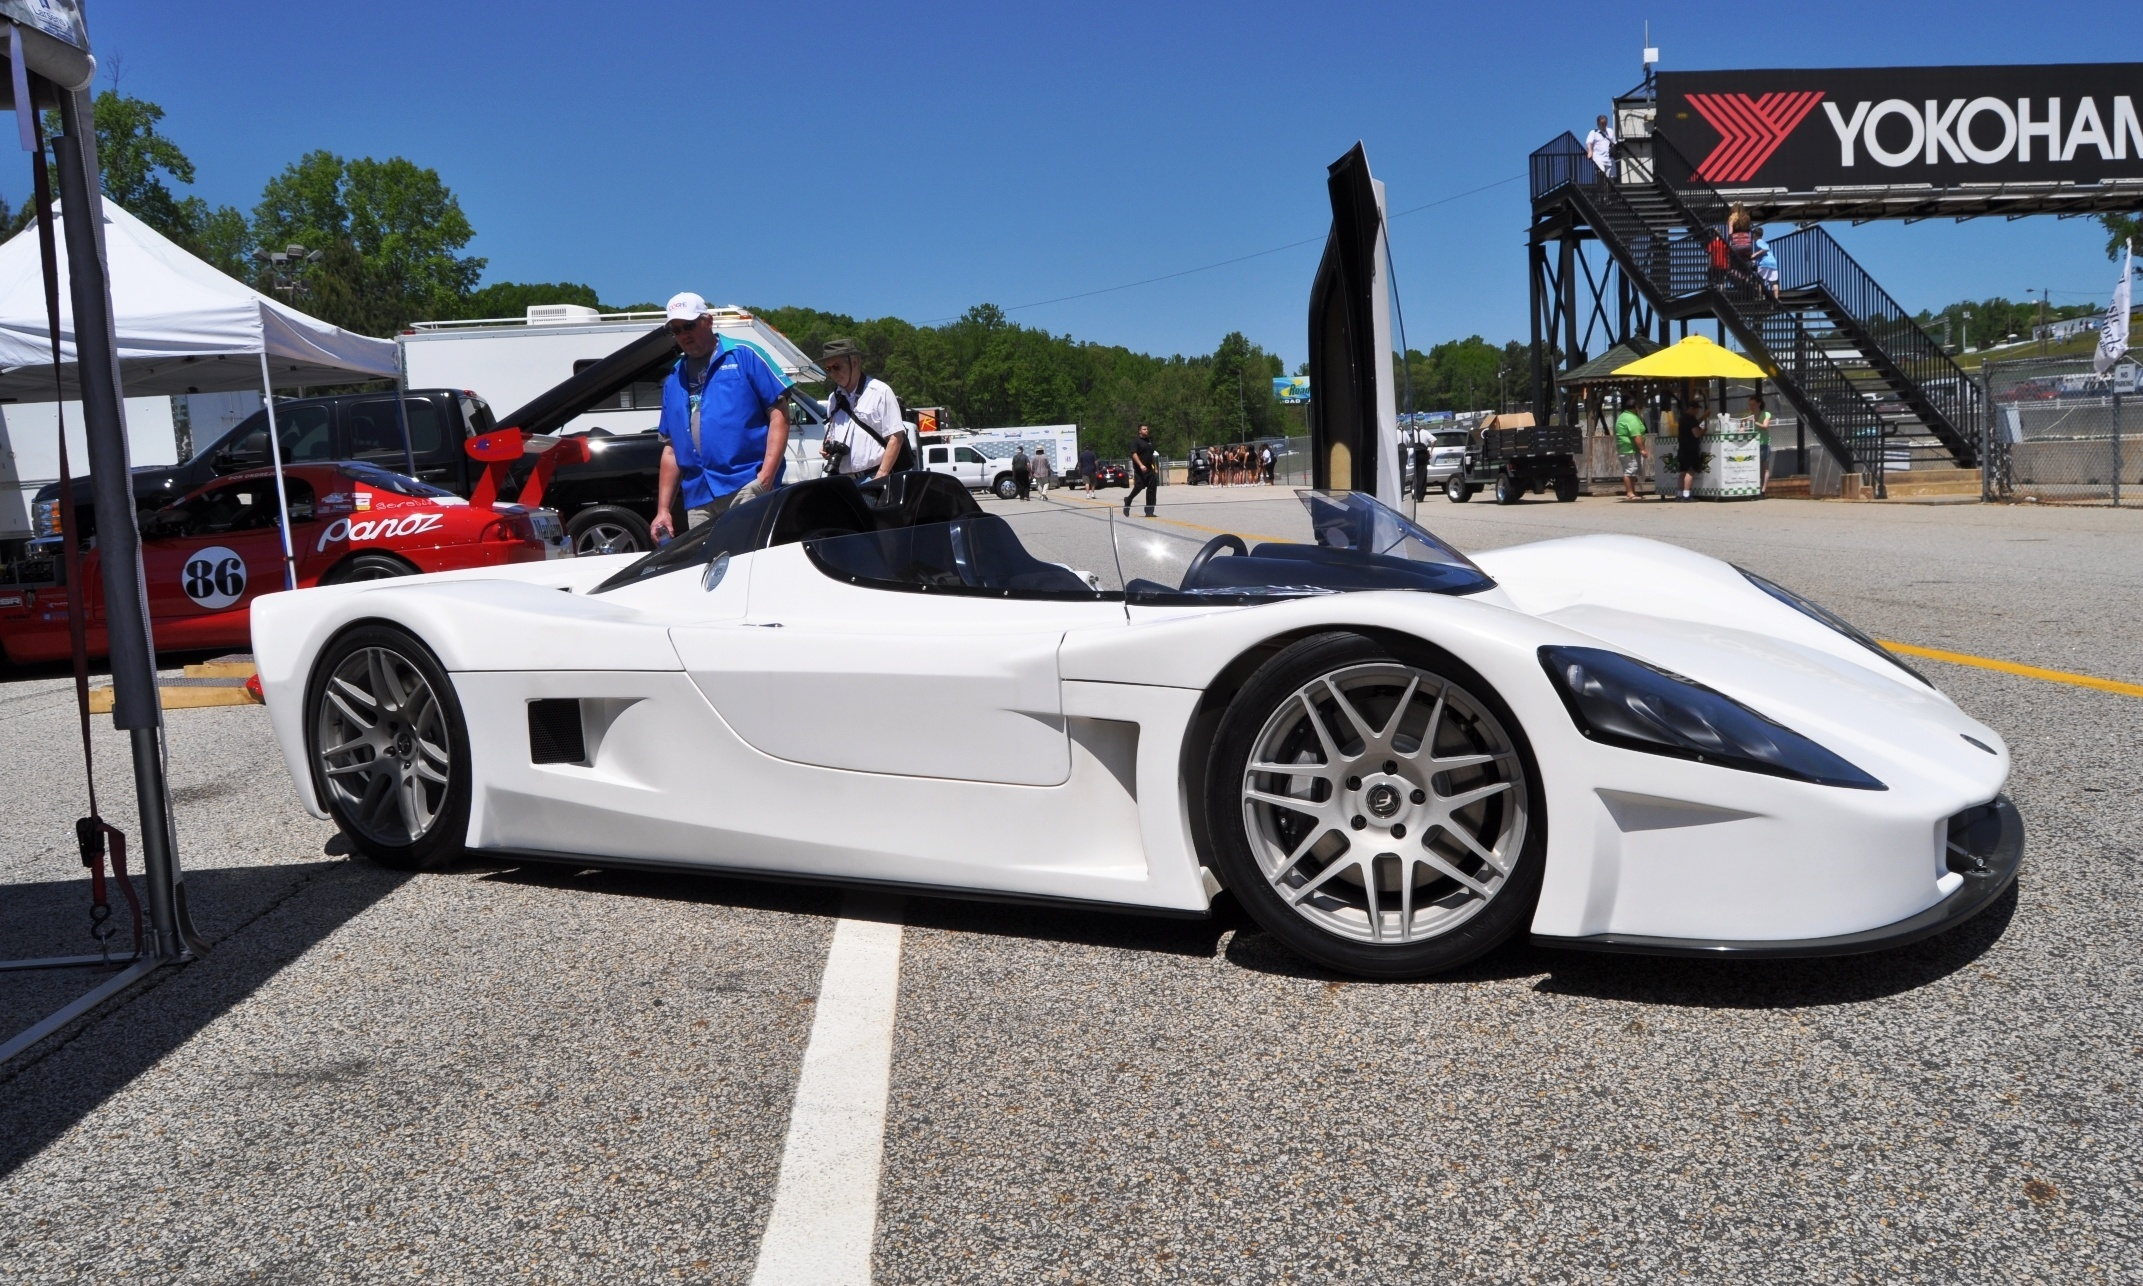 Slc Kit Car >> 2014 Superlite SLC Le Mans Spyder